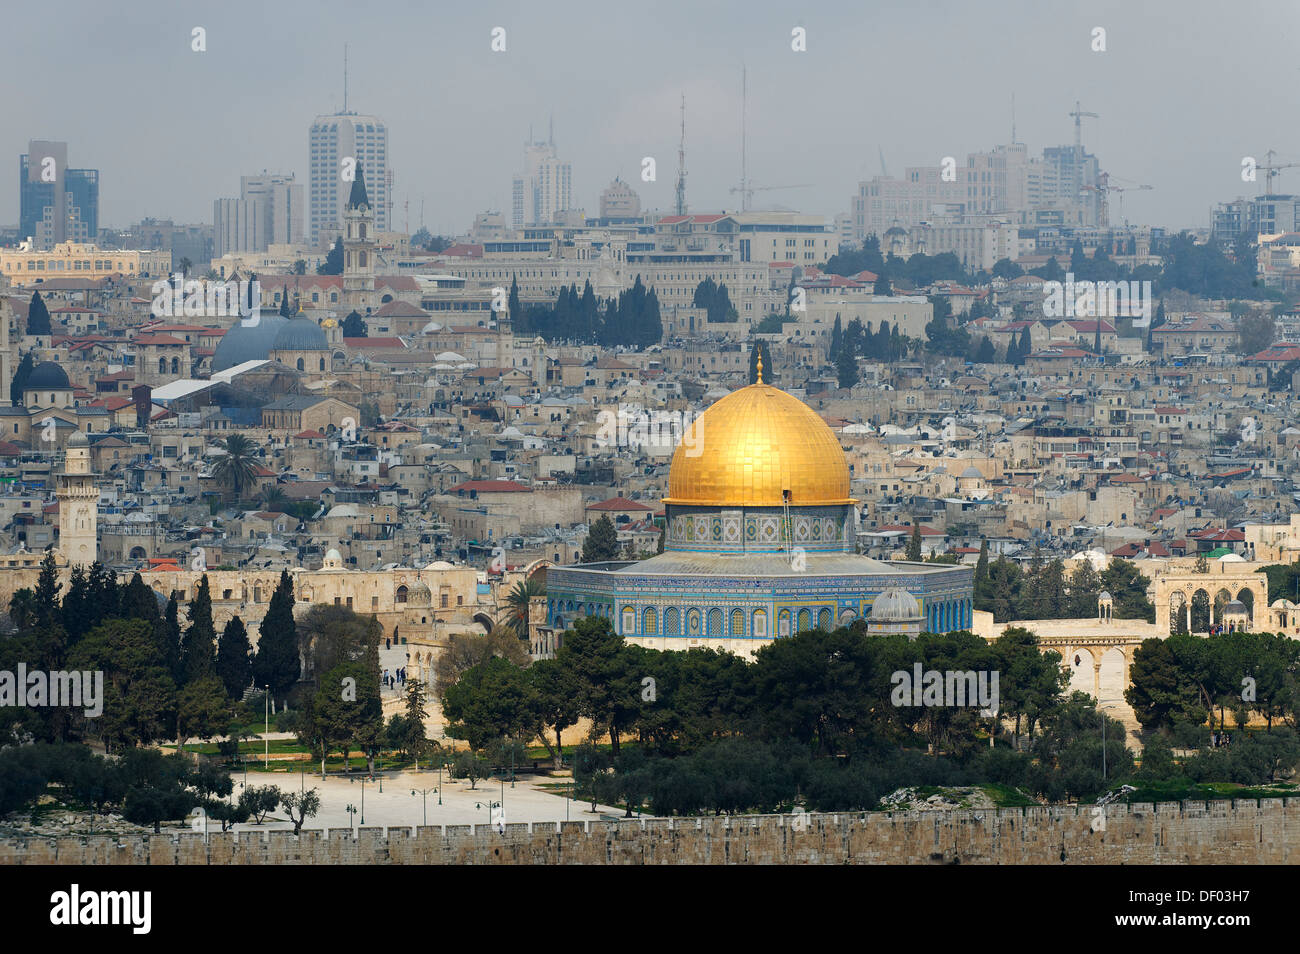 View from the Mount of Olives on the Dome of the Rock on the Temple Mount in the Old City of Jerusalem, Israel, Middle East - Stock Image